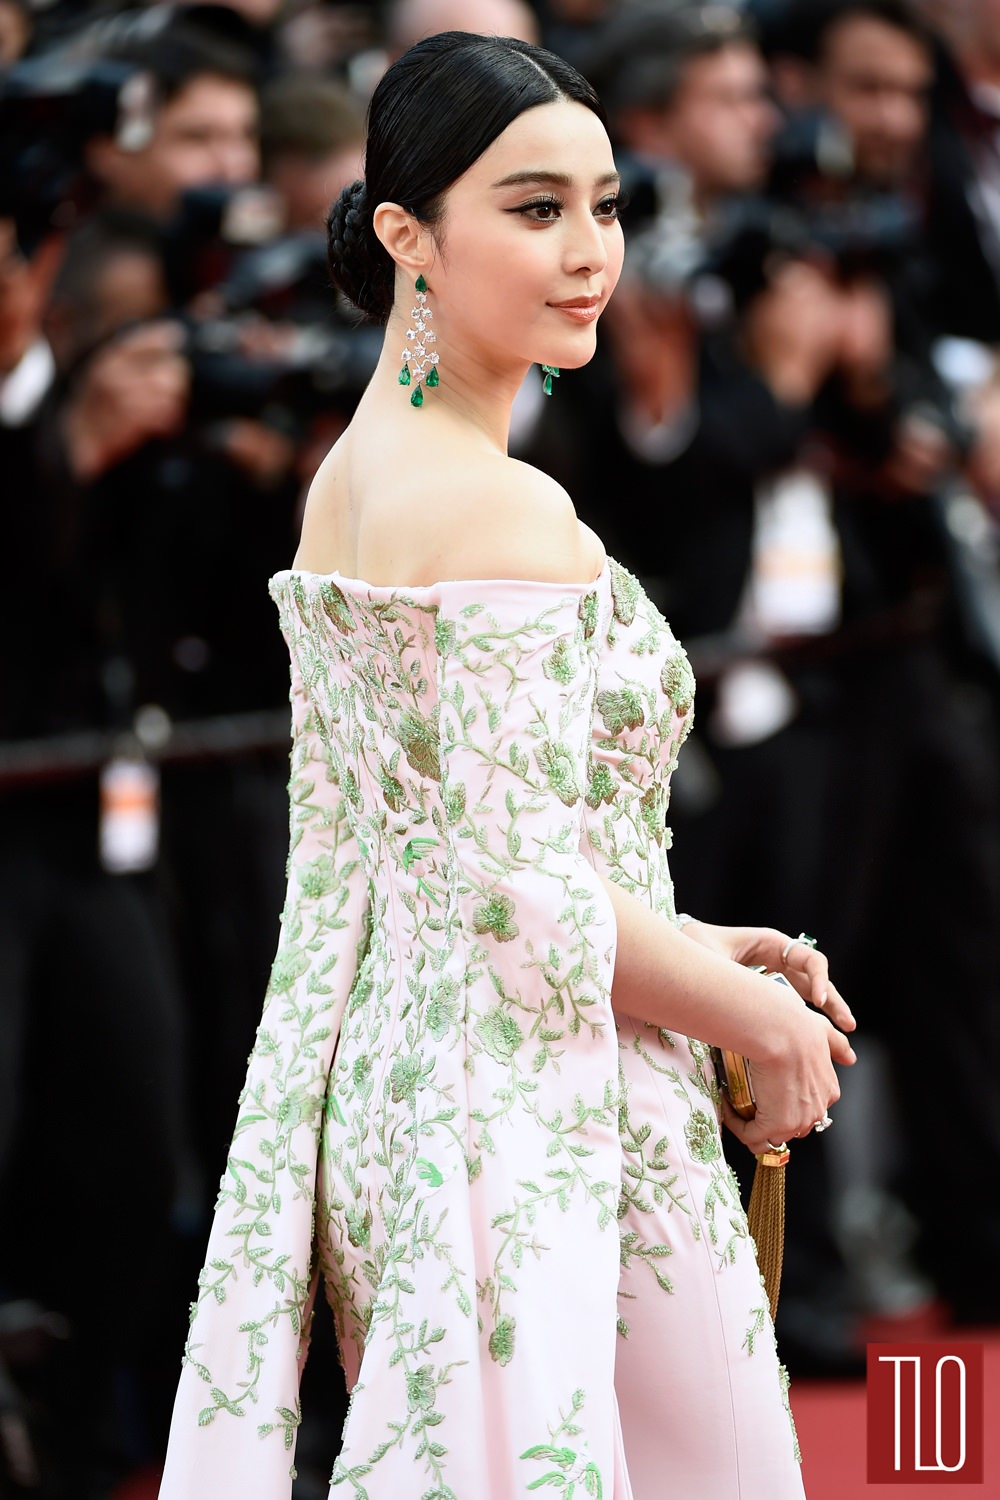 Fan-Bingbing-2015-Cannes-Film-Festival-Red-Carpet-Fashion-Ralph-Russo-Couture-Tom-Lorenzo-Site-TLO (1)